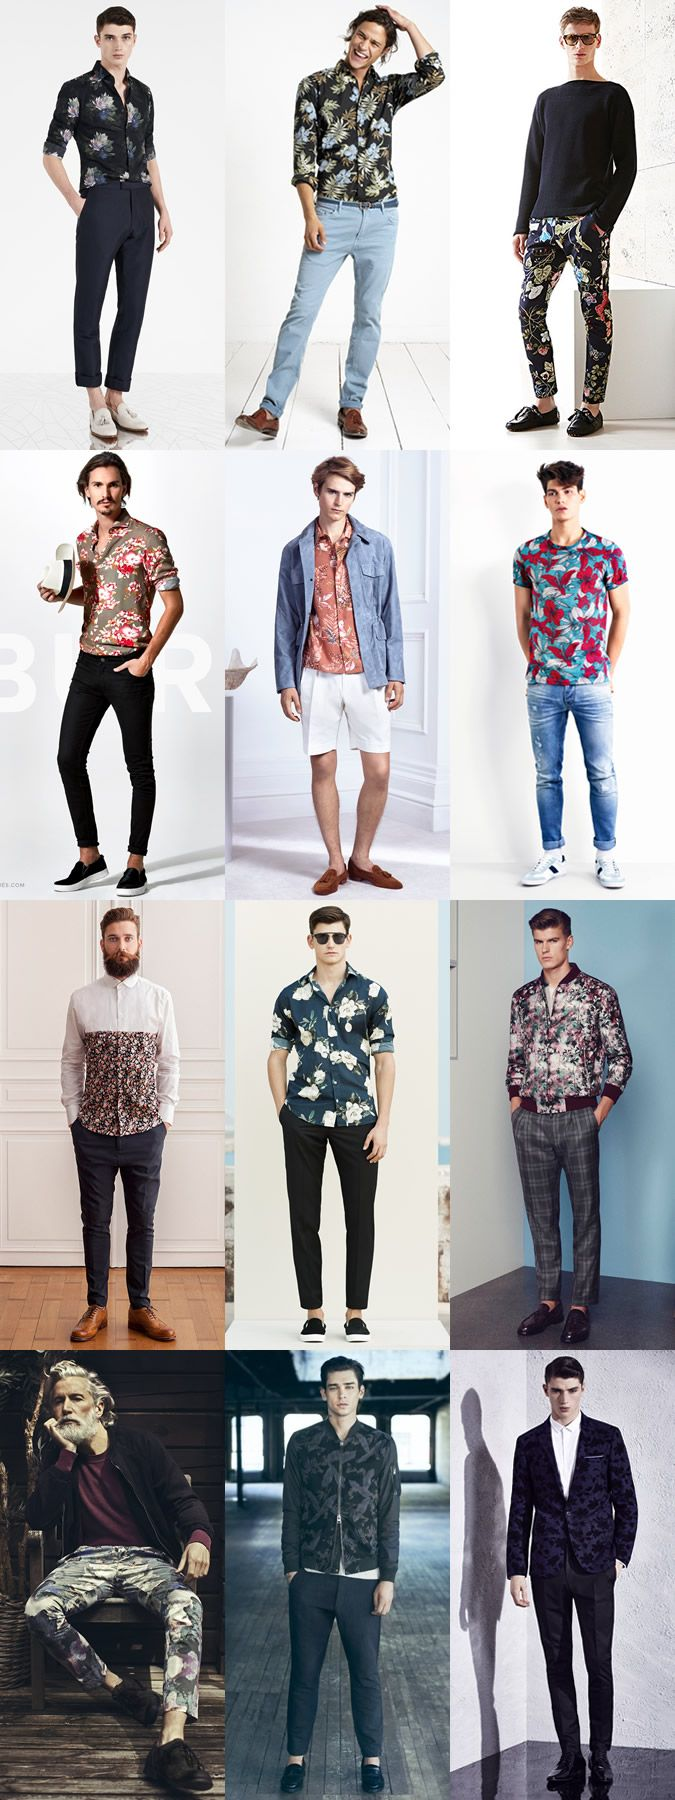 5 Trends To Master For 2015 Spring/Summer : 4) Florals Lookbook Inspiration